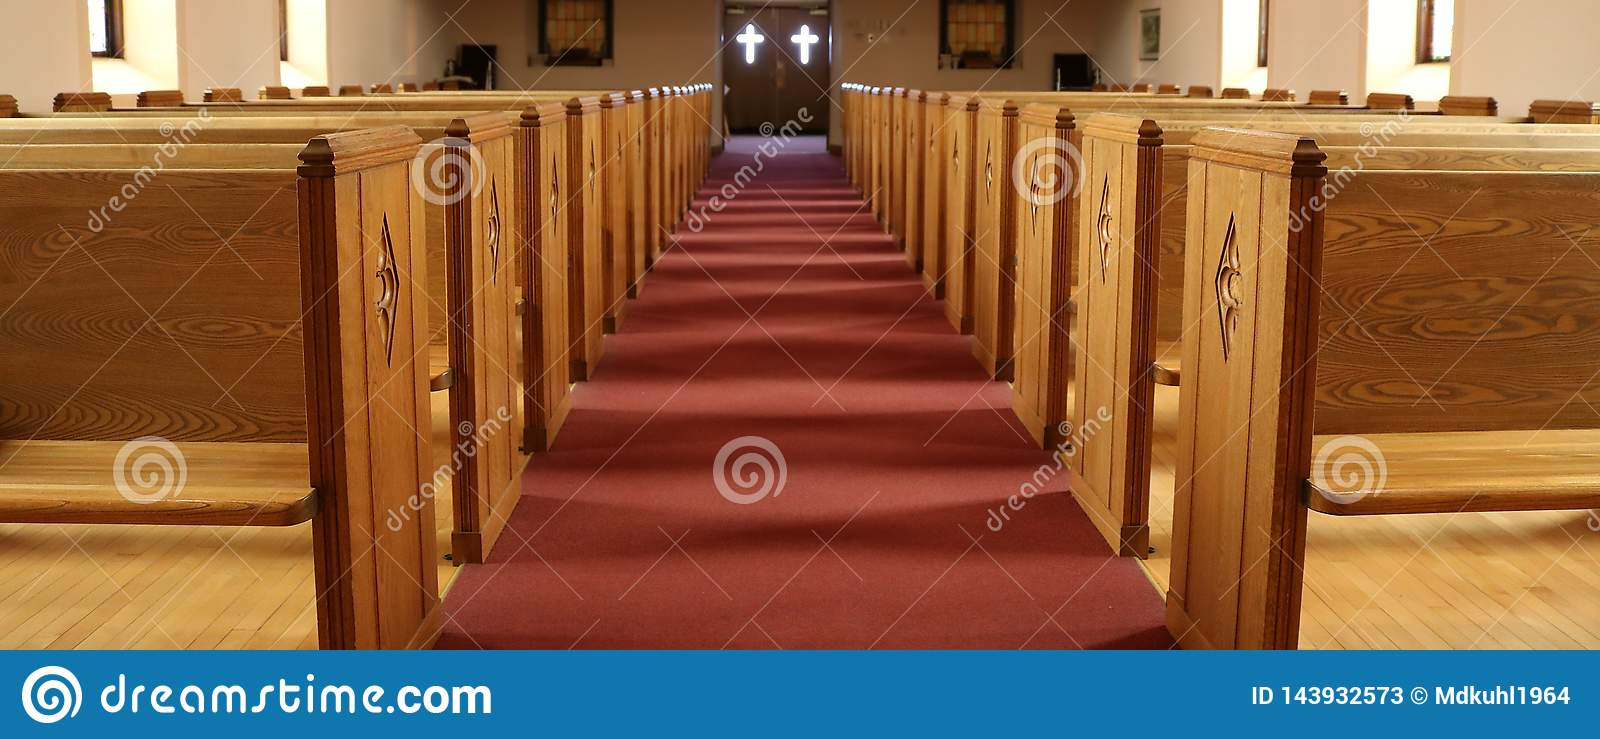 Aisle of traditional Christian church with empty pews